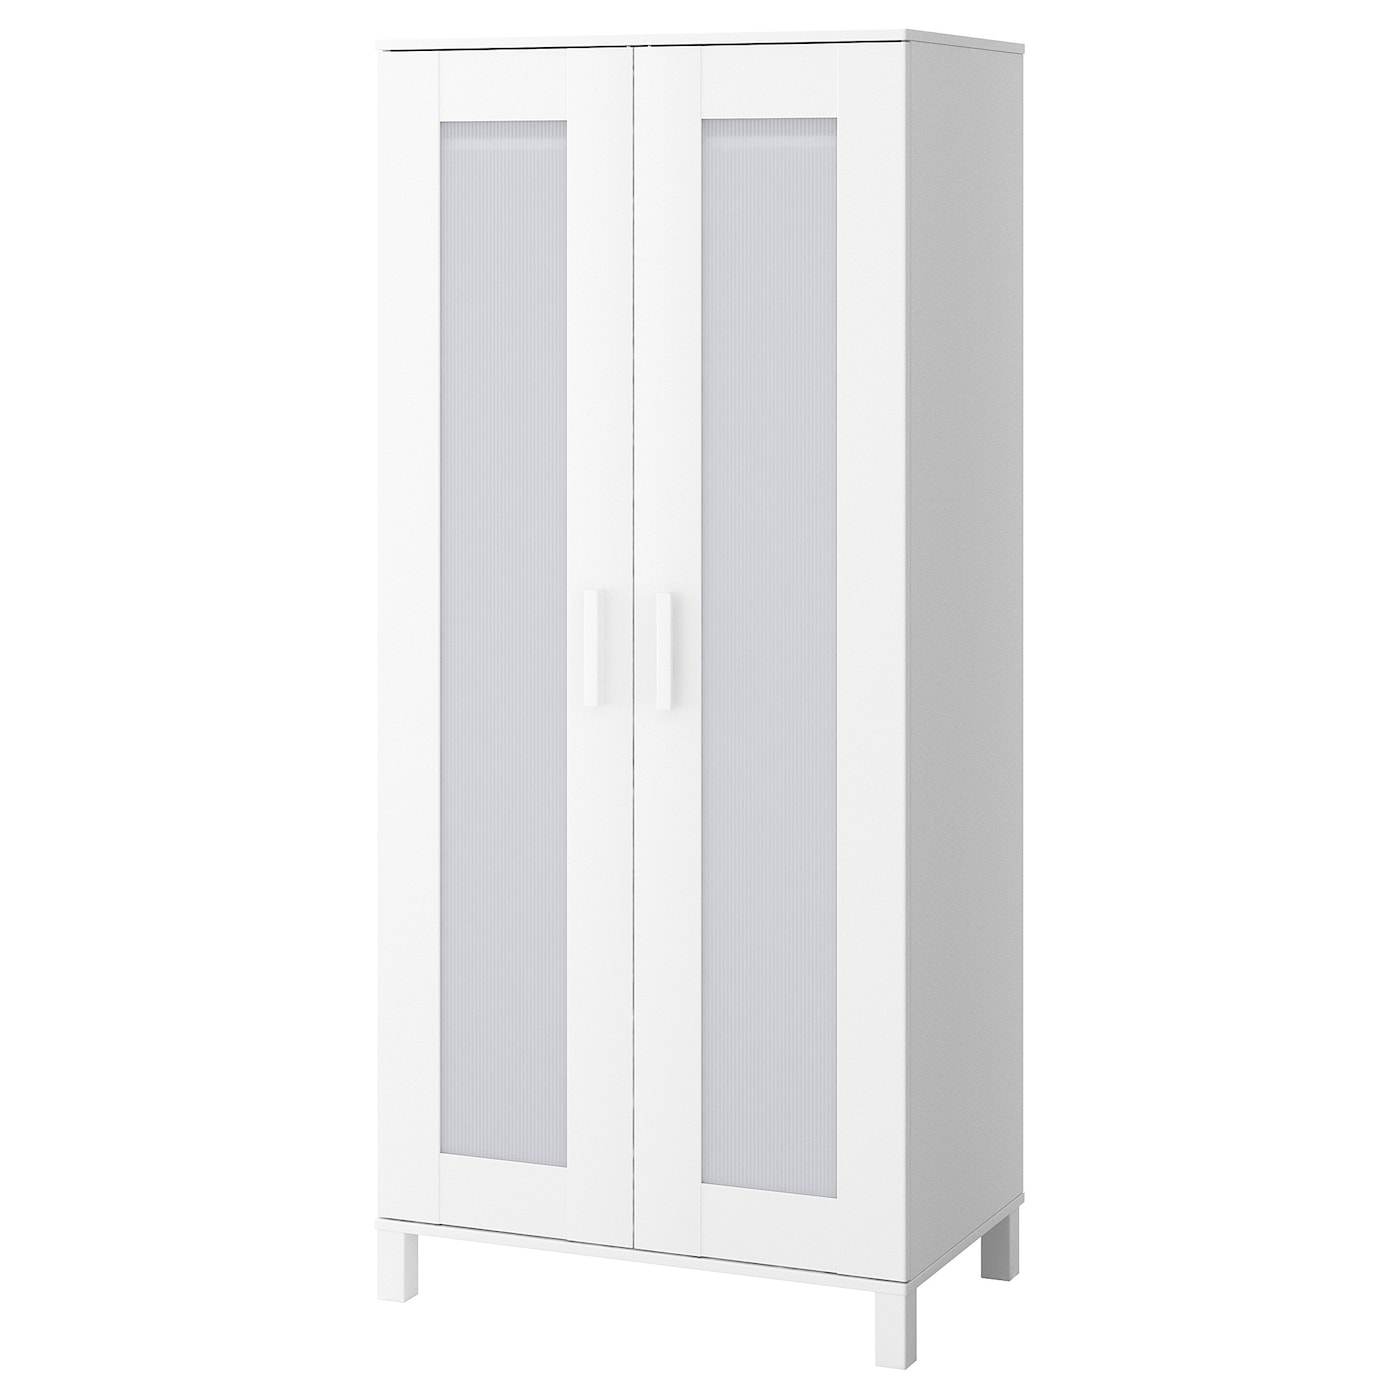 IKEA ANEBODA wardrobe Adjustable hinges ensure that the doors hang straight.